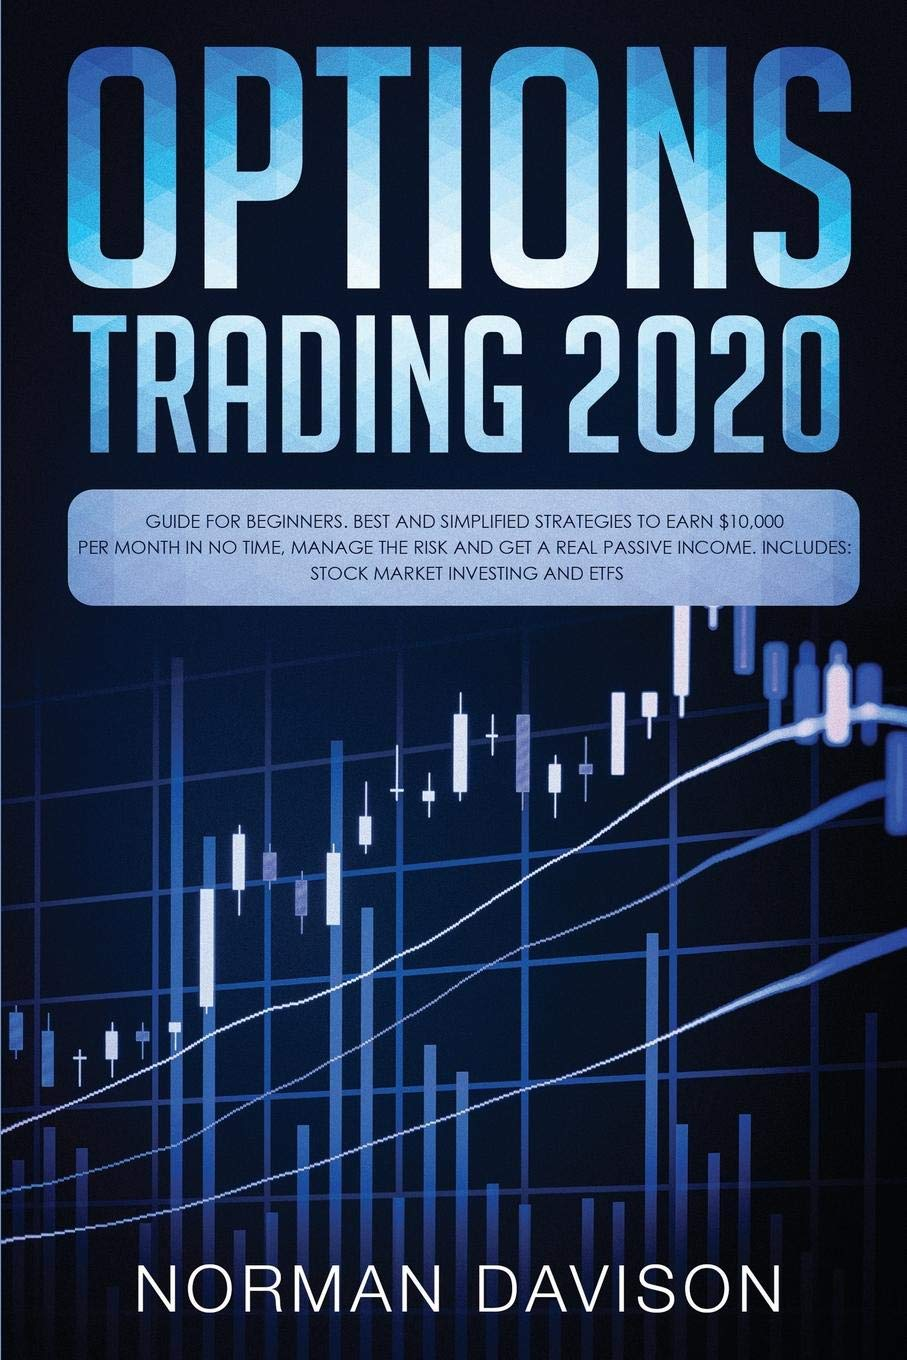 Best Etfs For 2020.Options Trading 2020 Guide For Beginners Best And